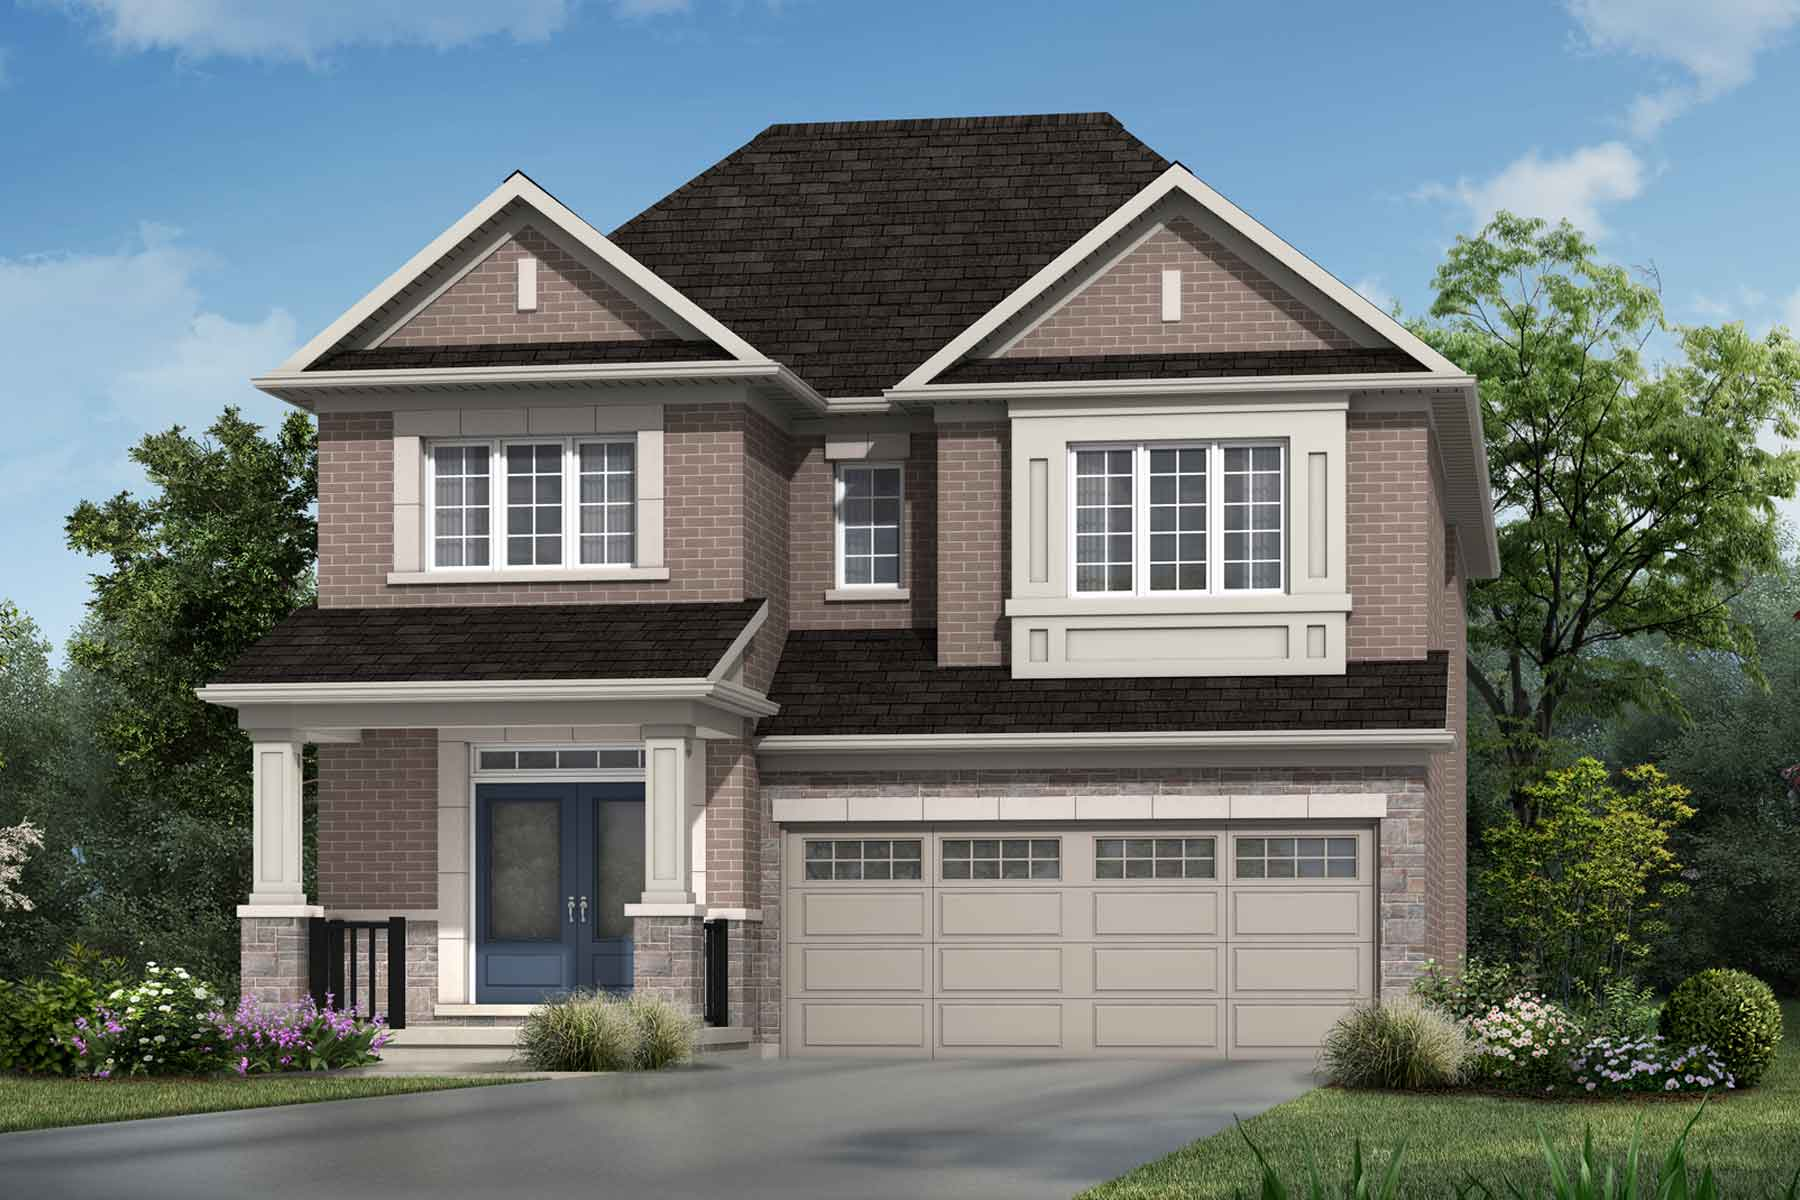 The Weber Plan traditional_southestates_weber_main at Wildflower Crossing in Kitchener Ontario by Mattamy Homes